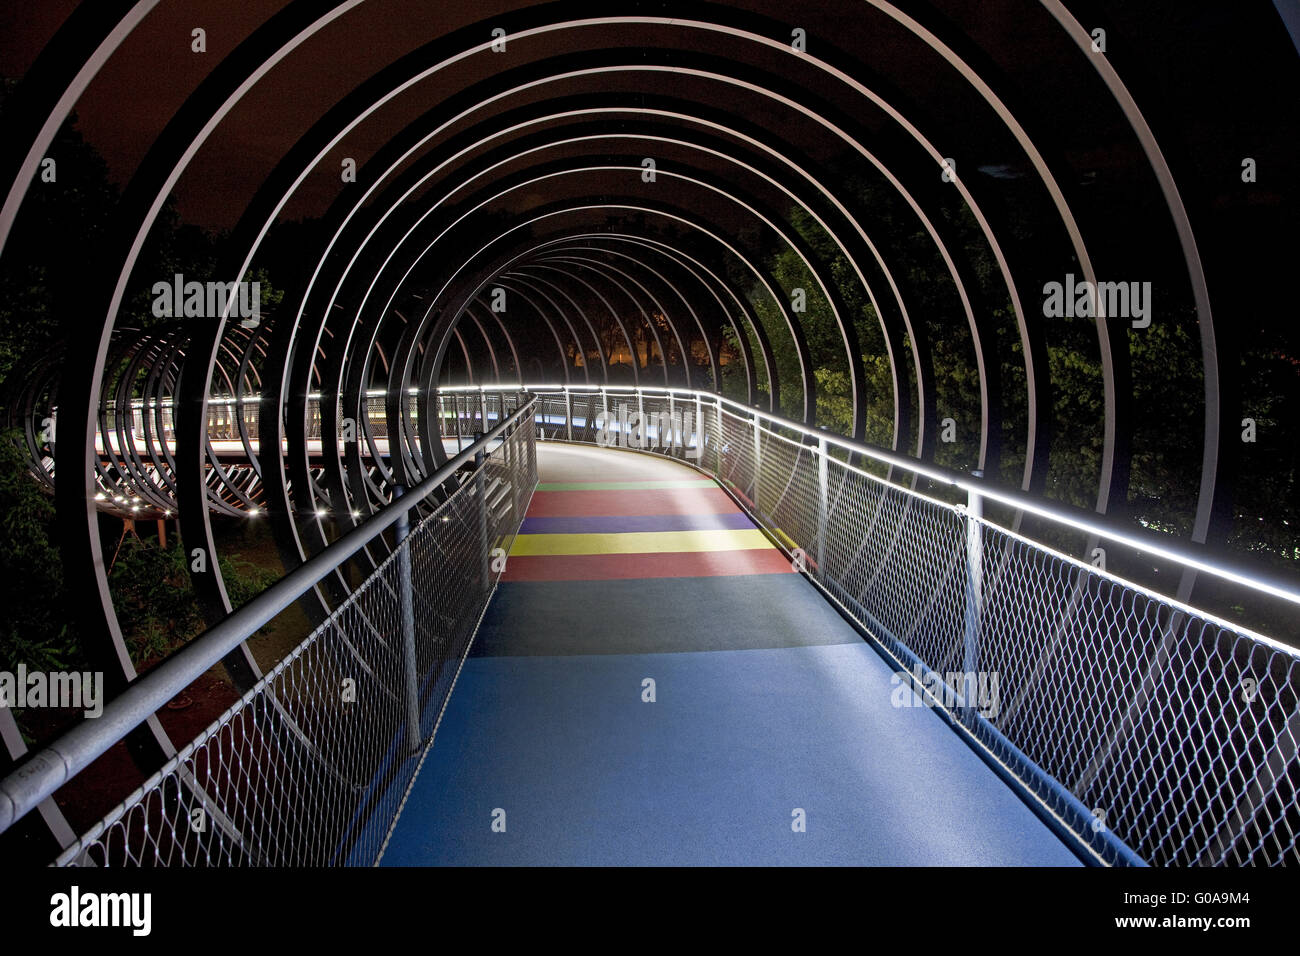 Bridge Slinky Springs to Fame, Oberhausen, Germany - Stock Image